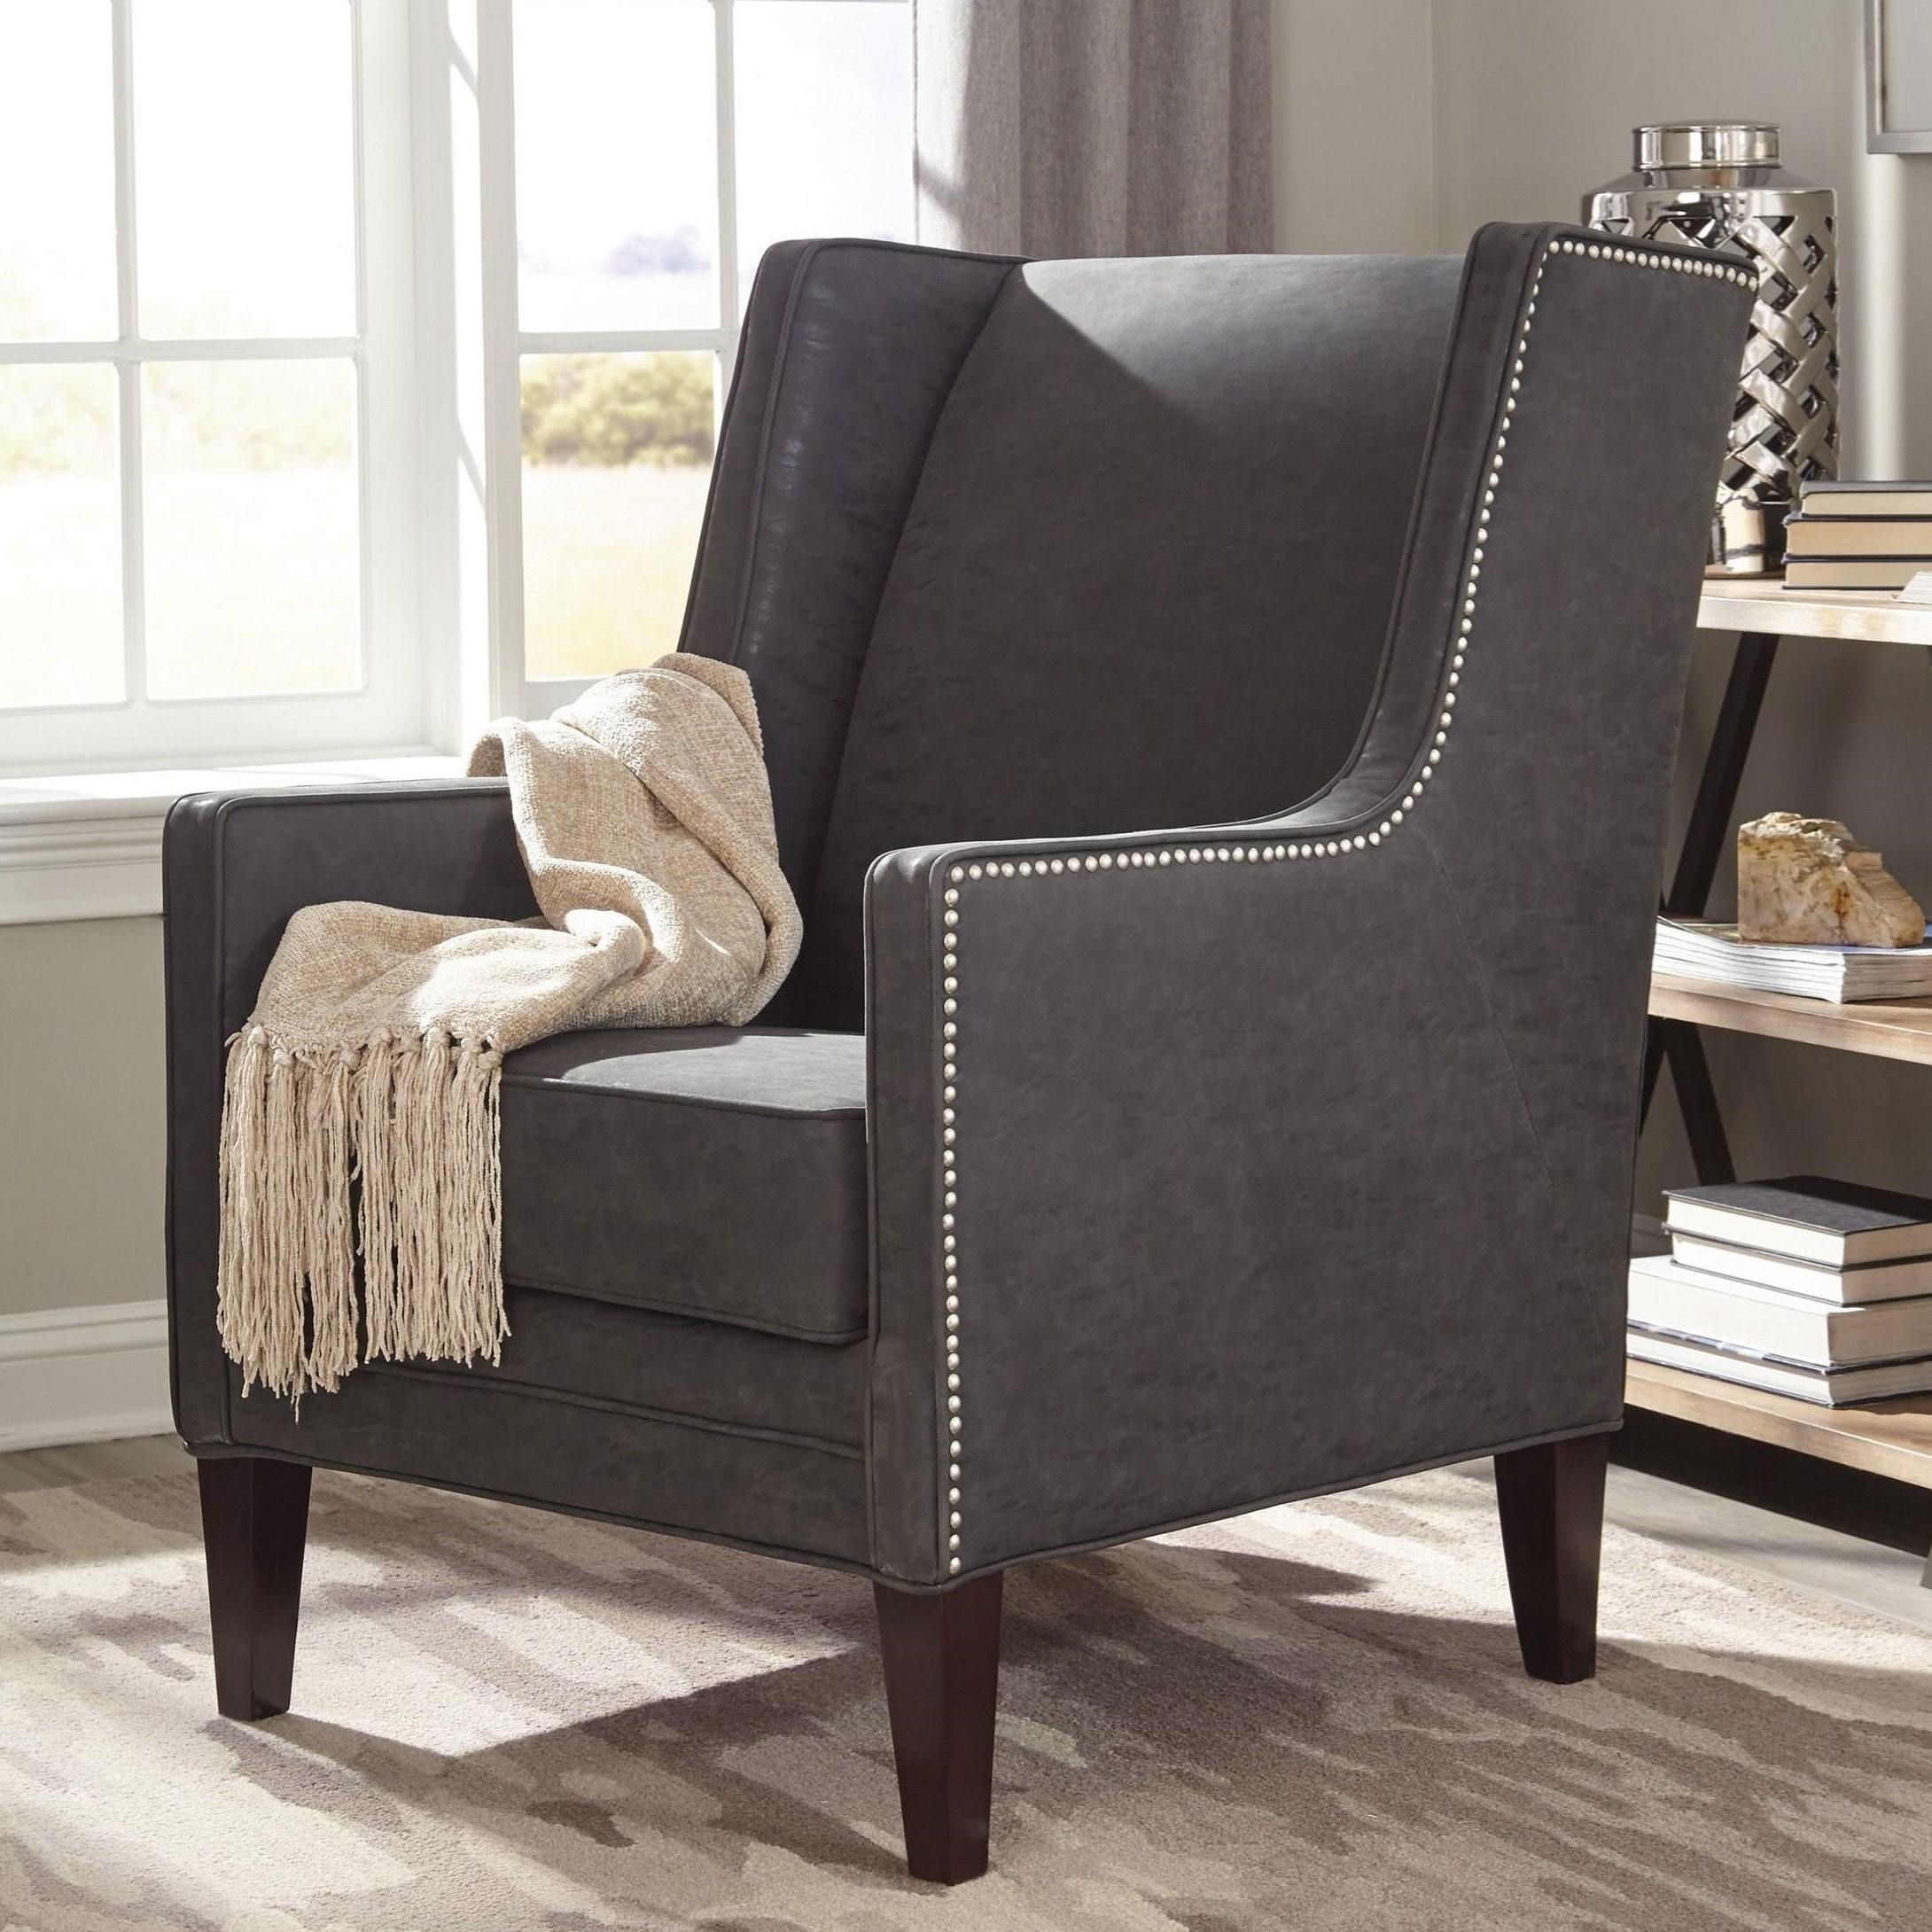 Accent Chair Living Room Wingback Modern Design Living Room Charcoal Grey Accent Chair